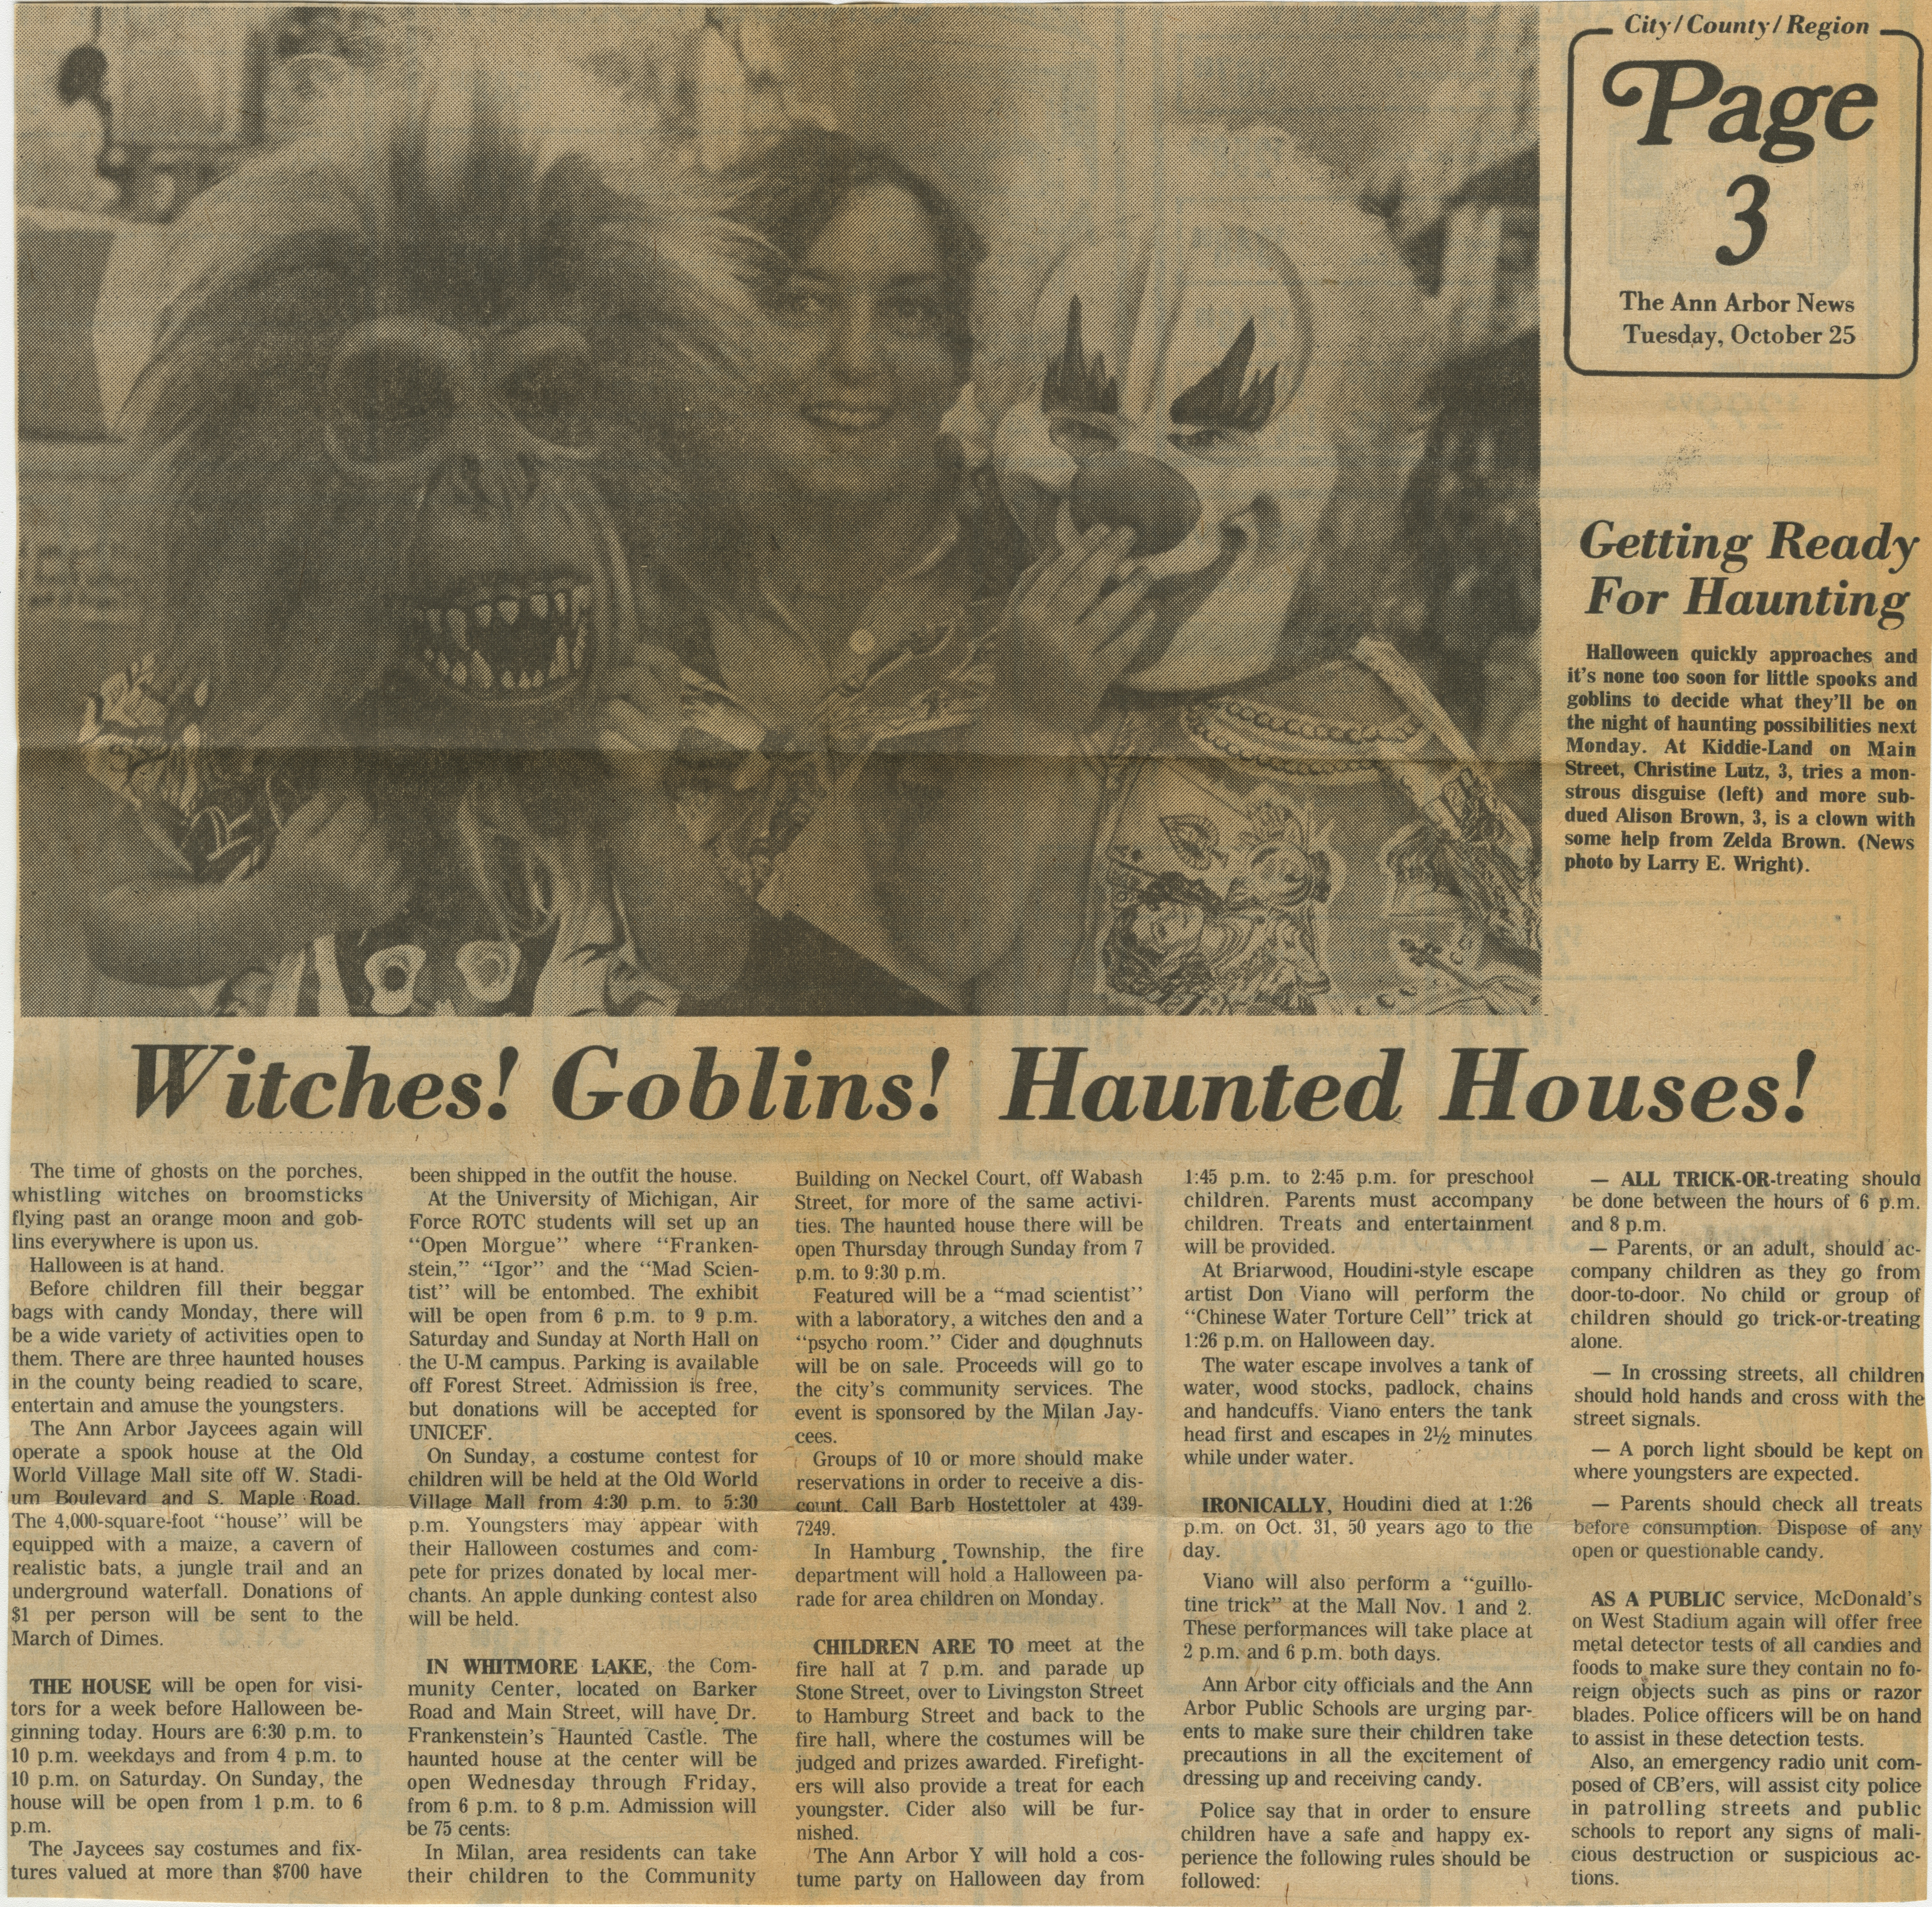 Witches! Goblins! Haunted Houses! image